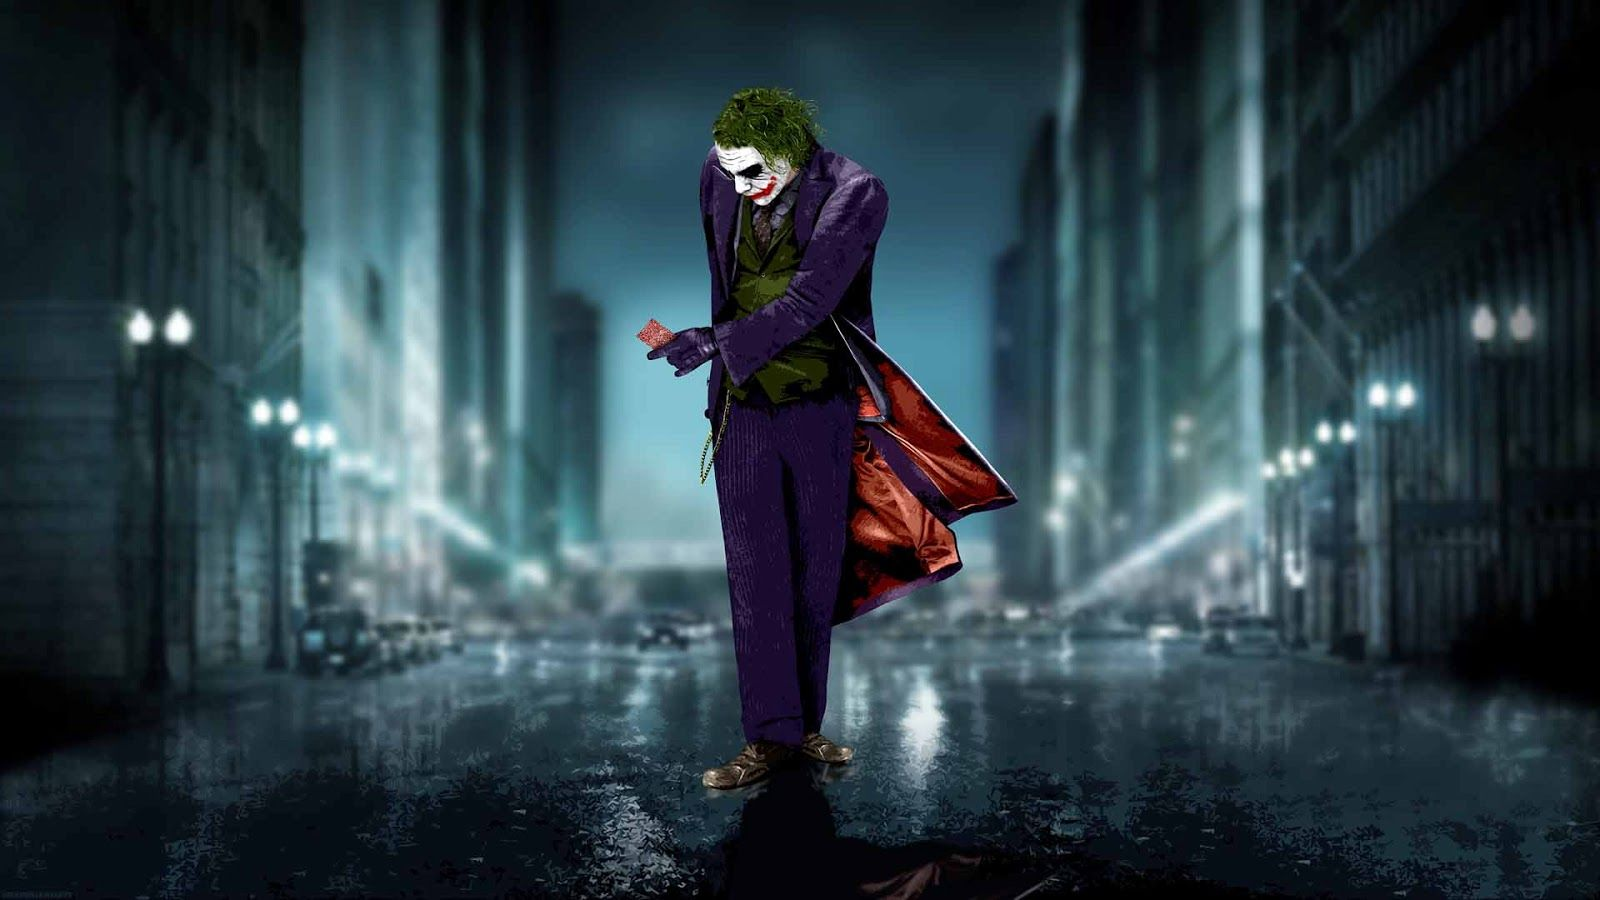 Joker Dark Knight Wallpapers Wallpaper Joker Pinterest Joker